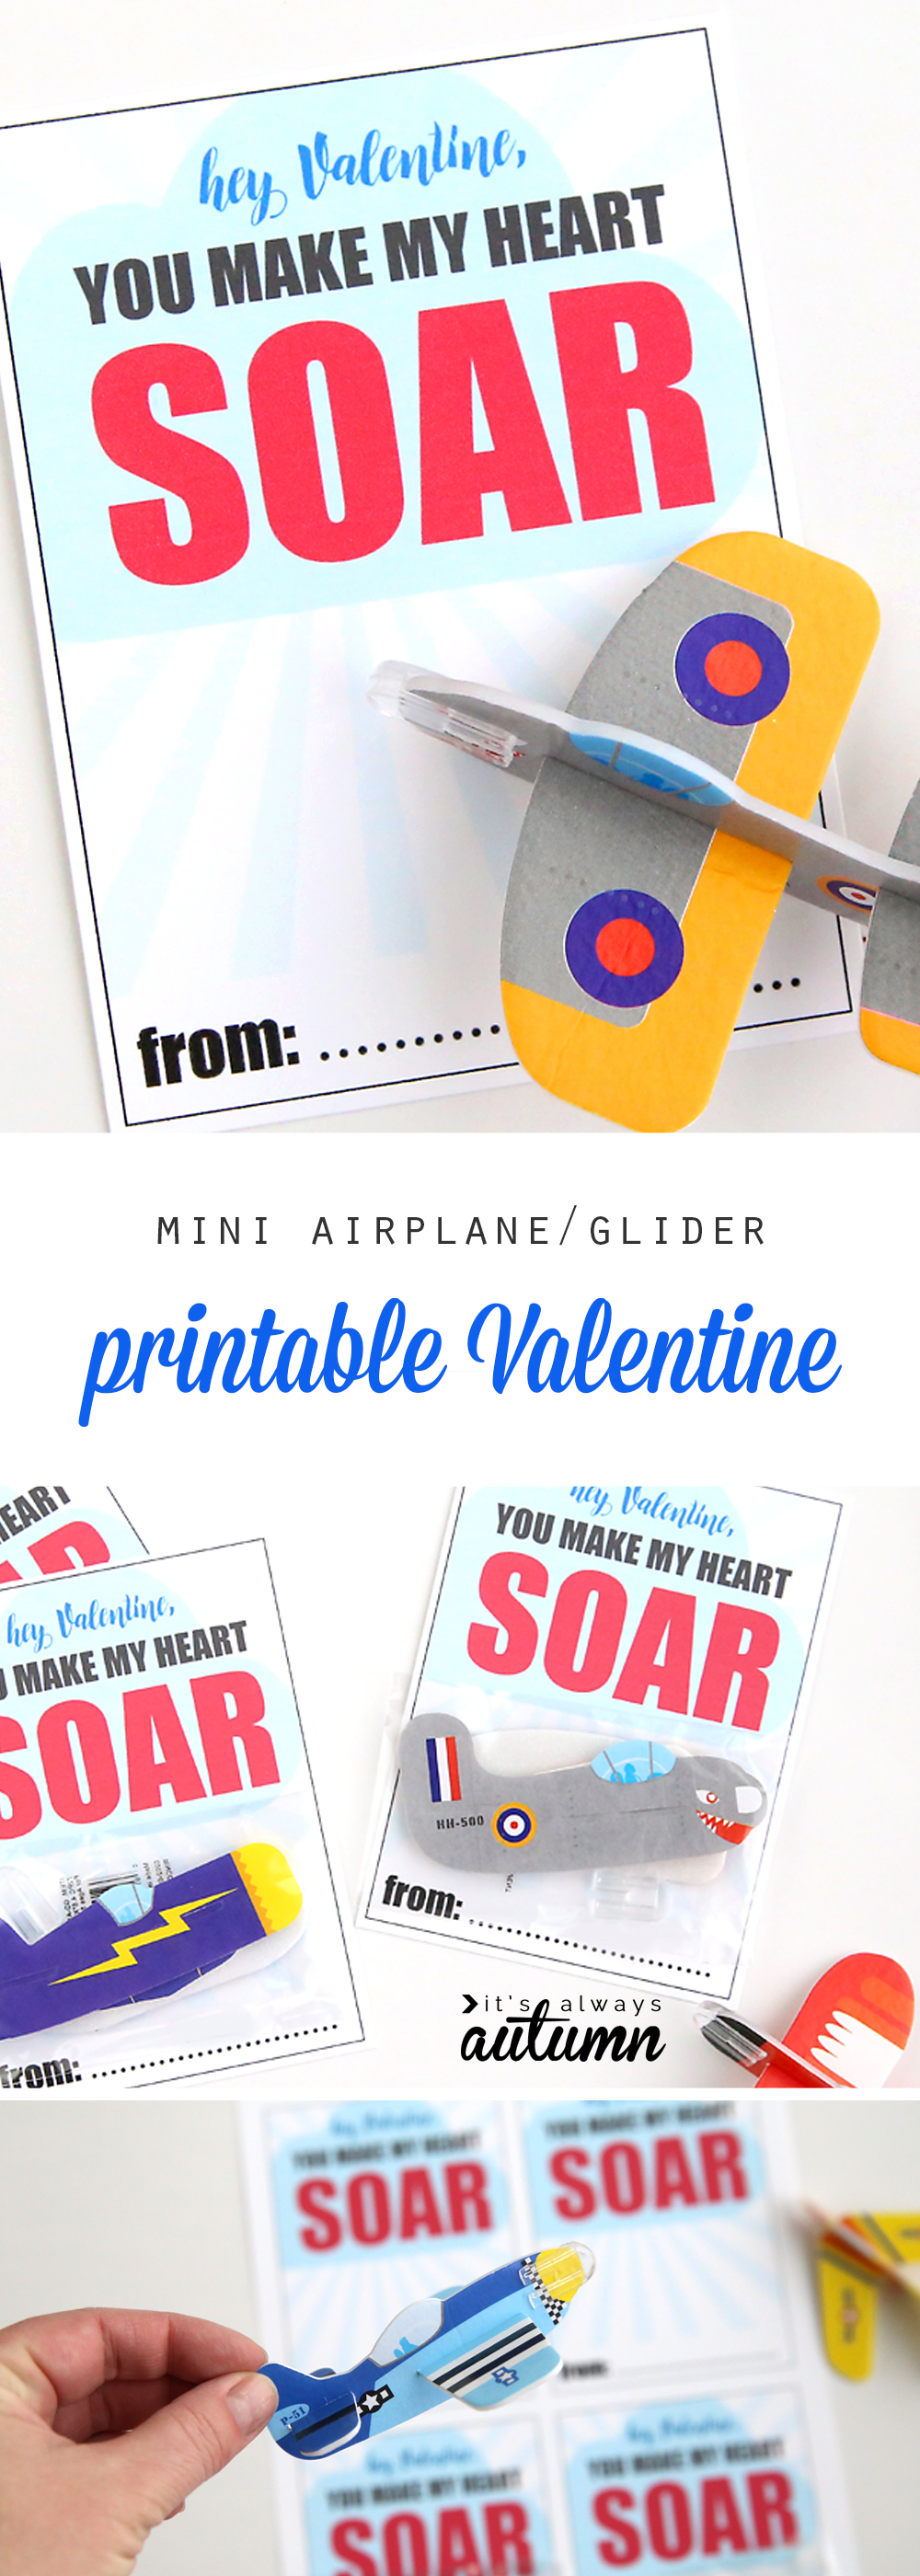 Mini glider Valentine\'s day cards that say: hey Valentine, you make my heart soar